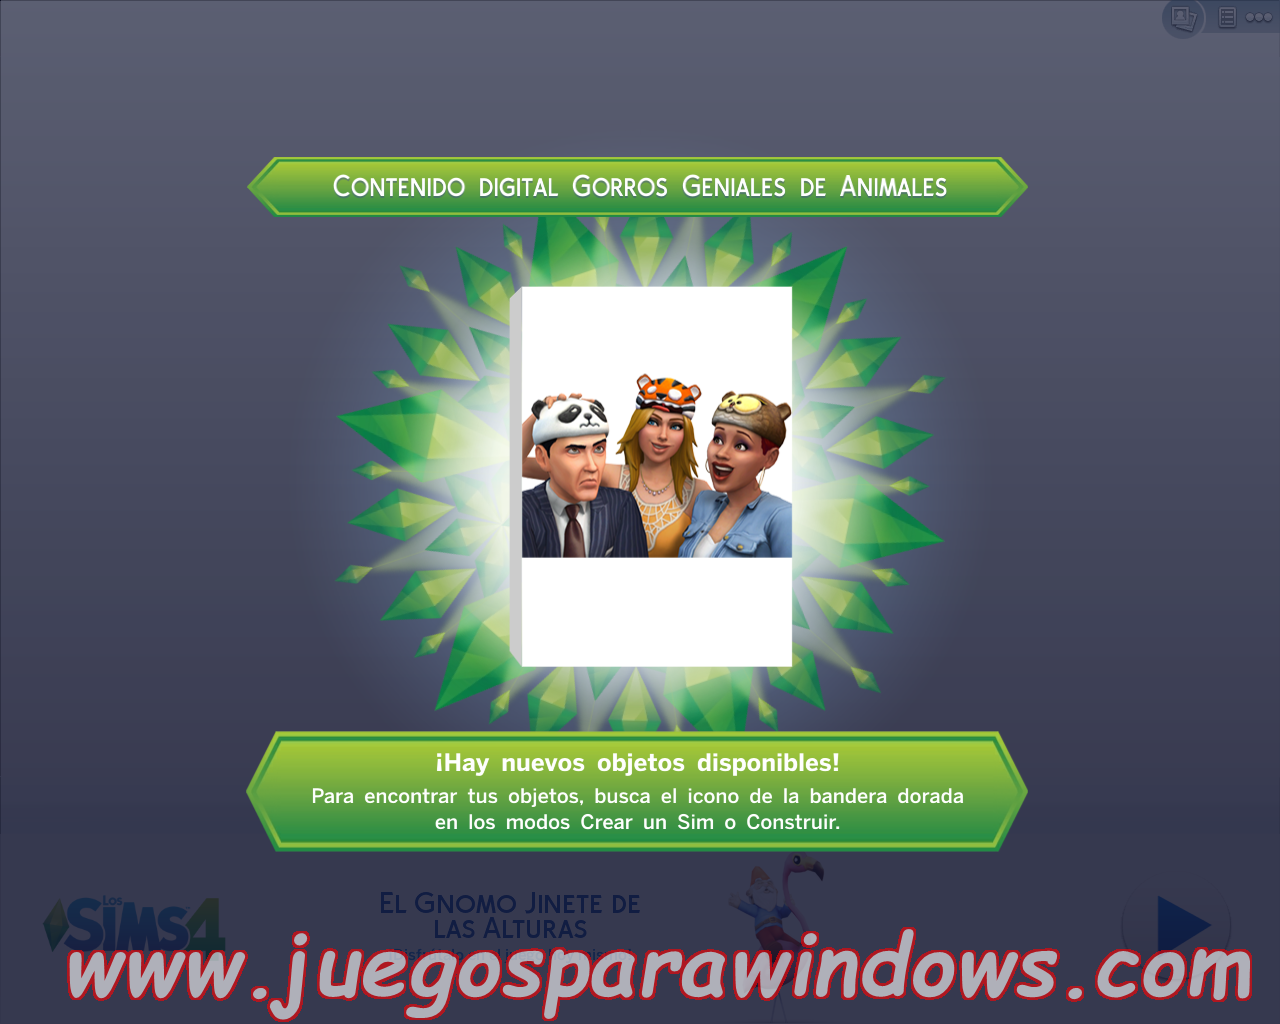 Los Sims 4 Digital Deluxe Edition ESPAÑOL PC Full + Update v1.4.83.1010 Incl DLC (RELOADED) 1